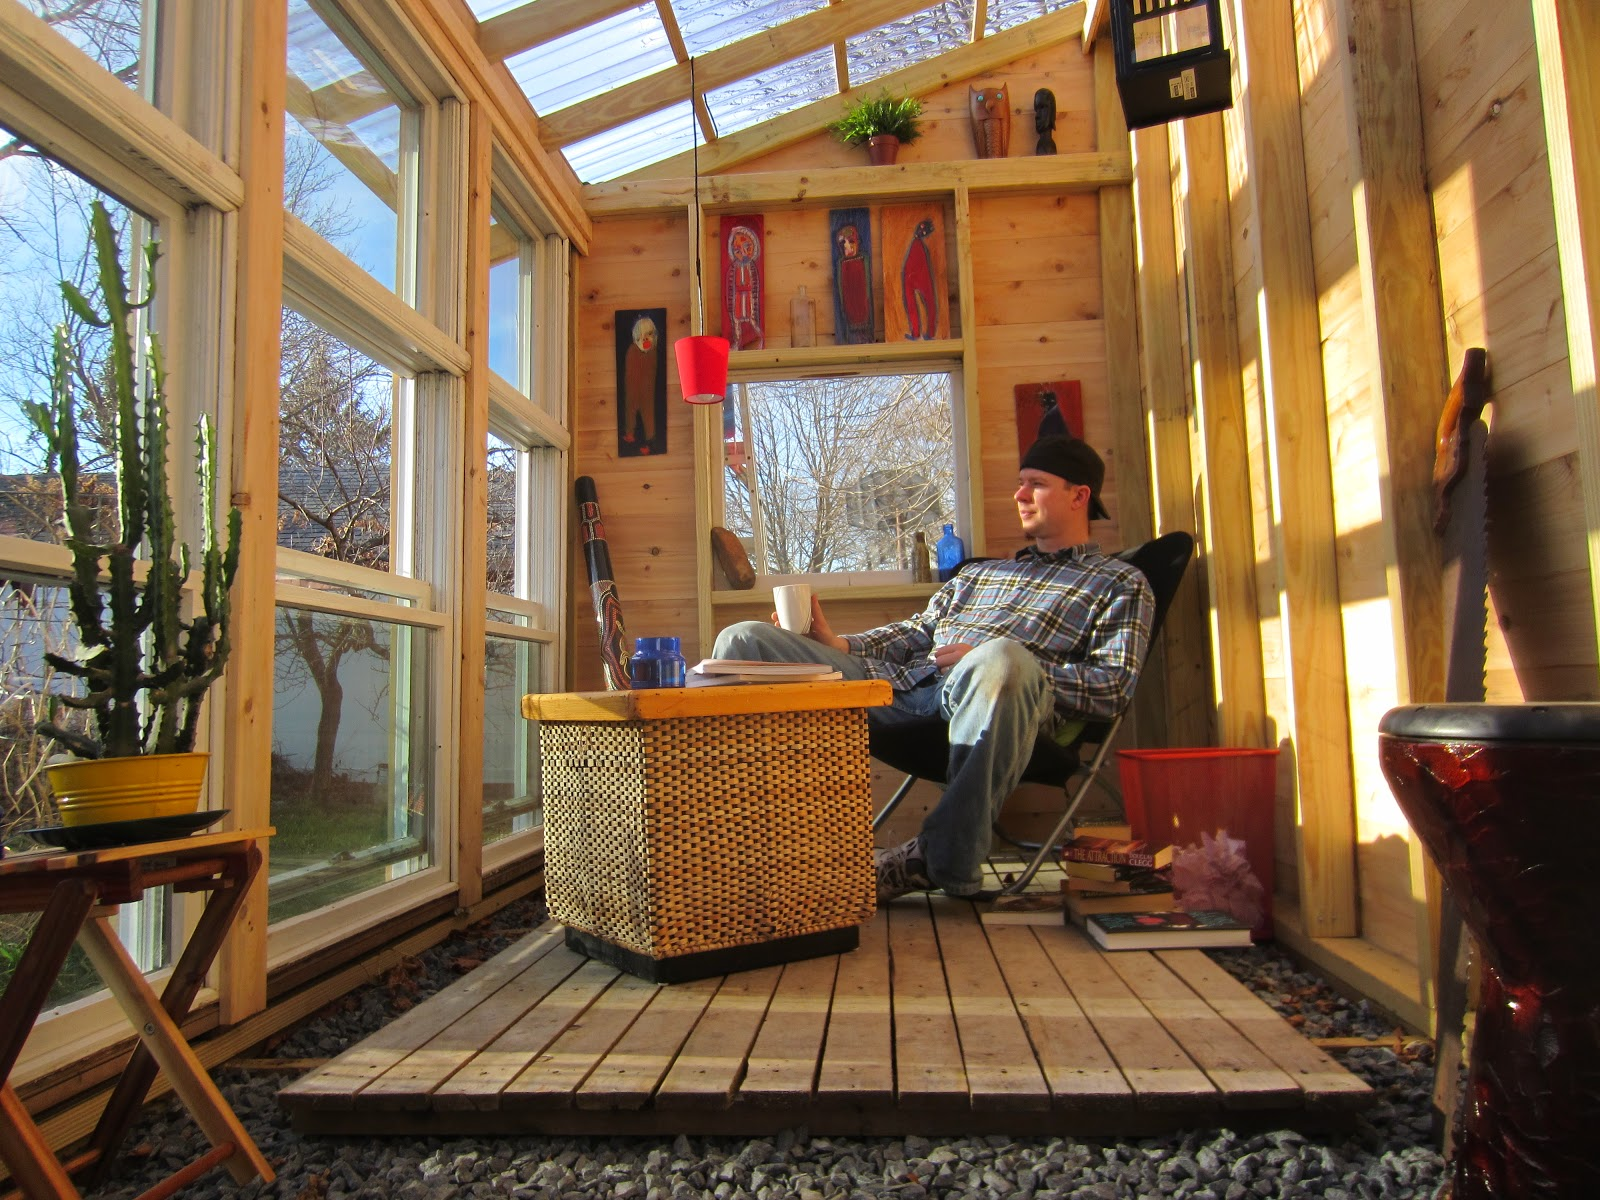 Build Tiny House In Backyard :  for lack of a better name a solar, writers shacktiny retreat house